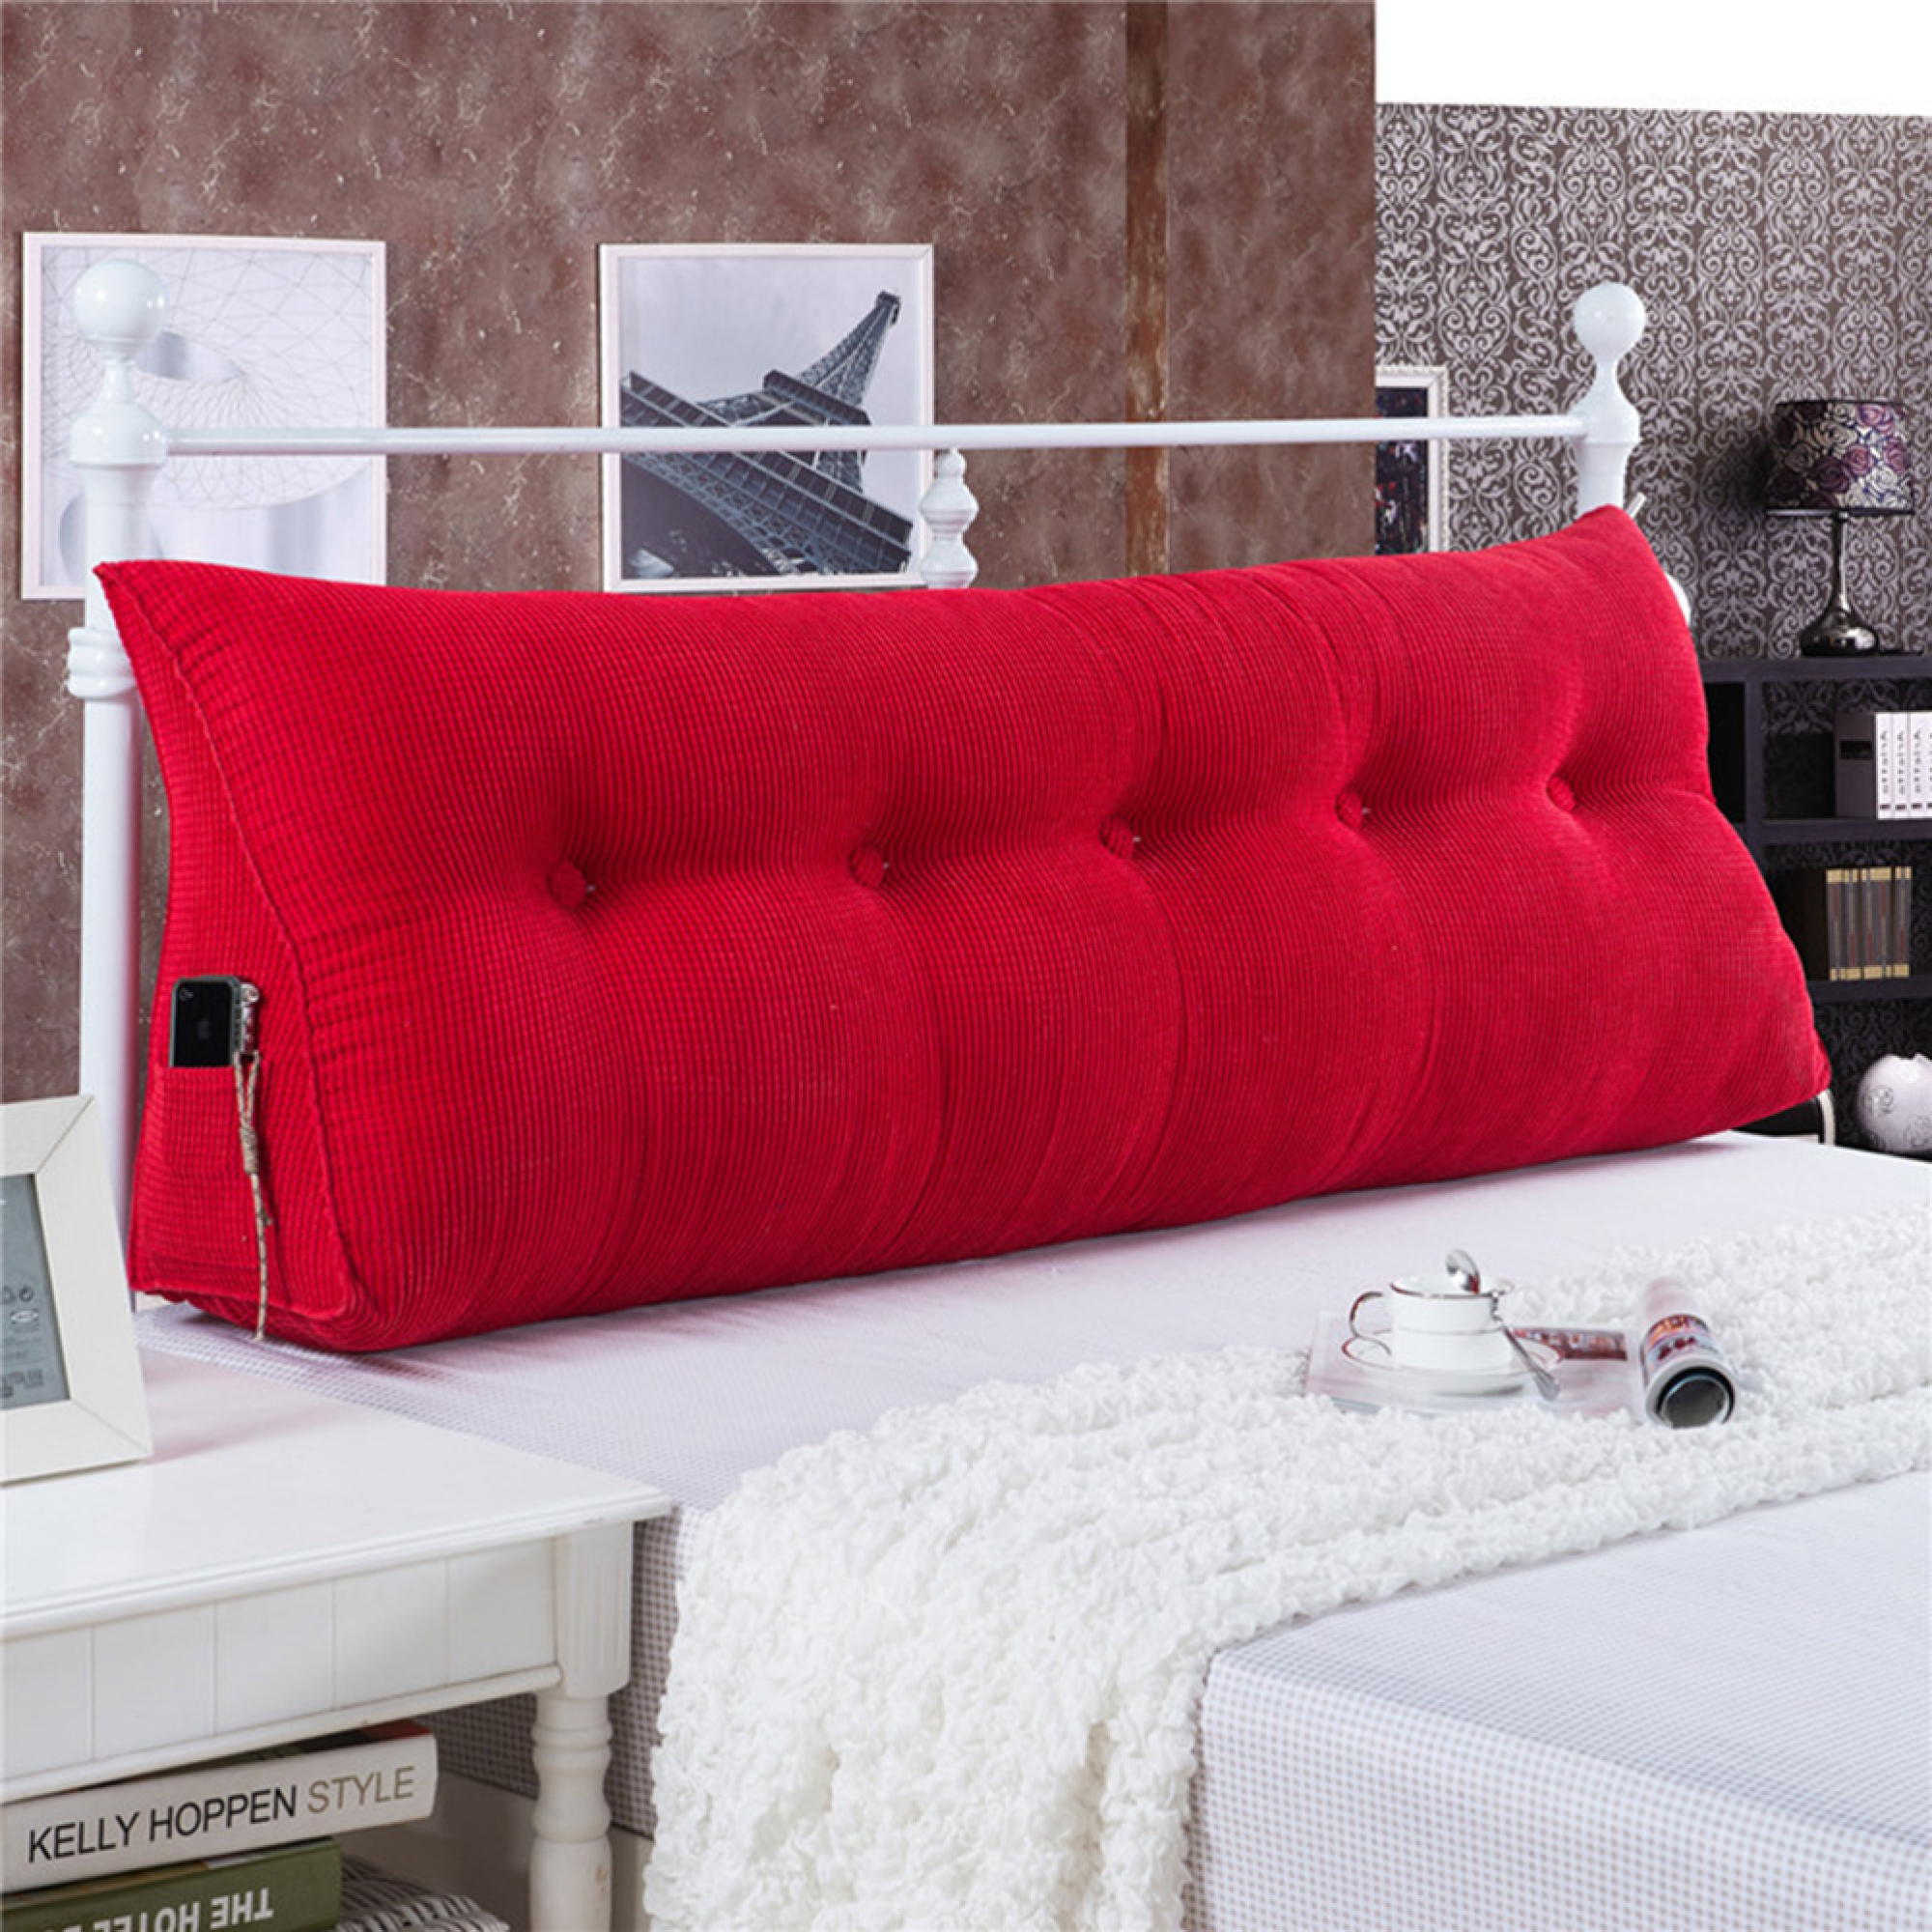 Sofa Bed Large Filled Triangular Wedge Cushion Backrest Positioning Support Pillow Reading Office Lumbar Pad With Removable Cover Red